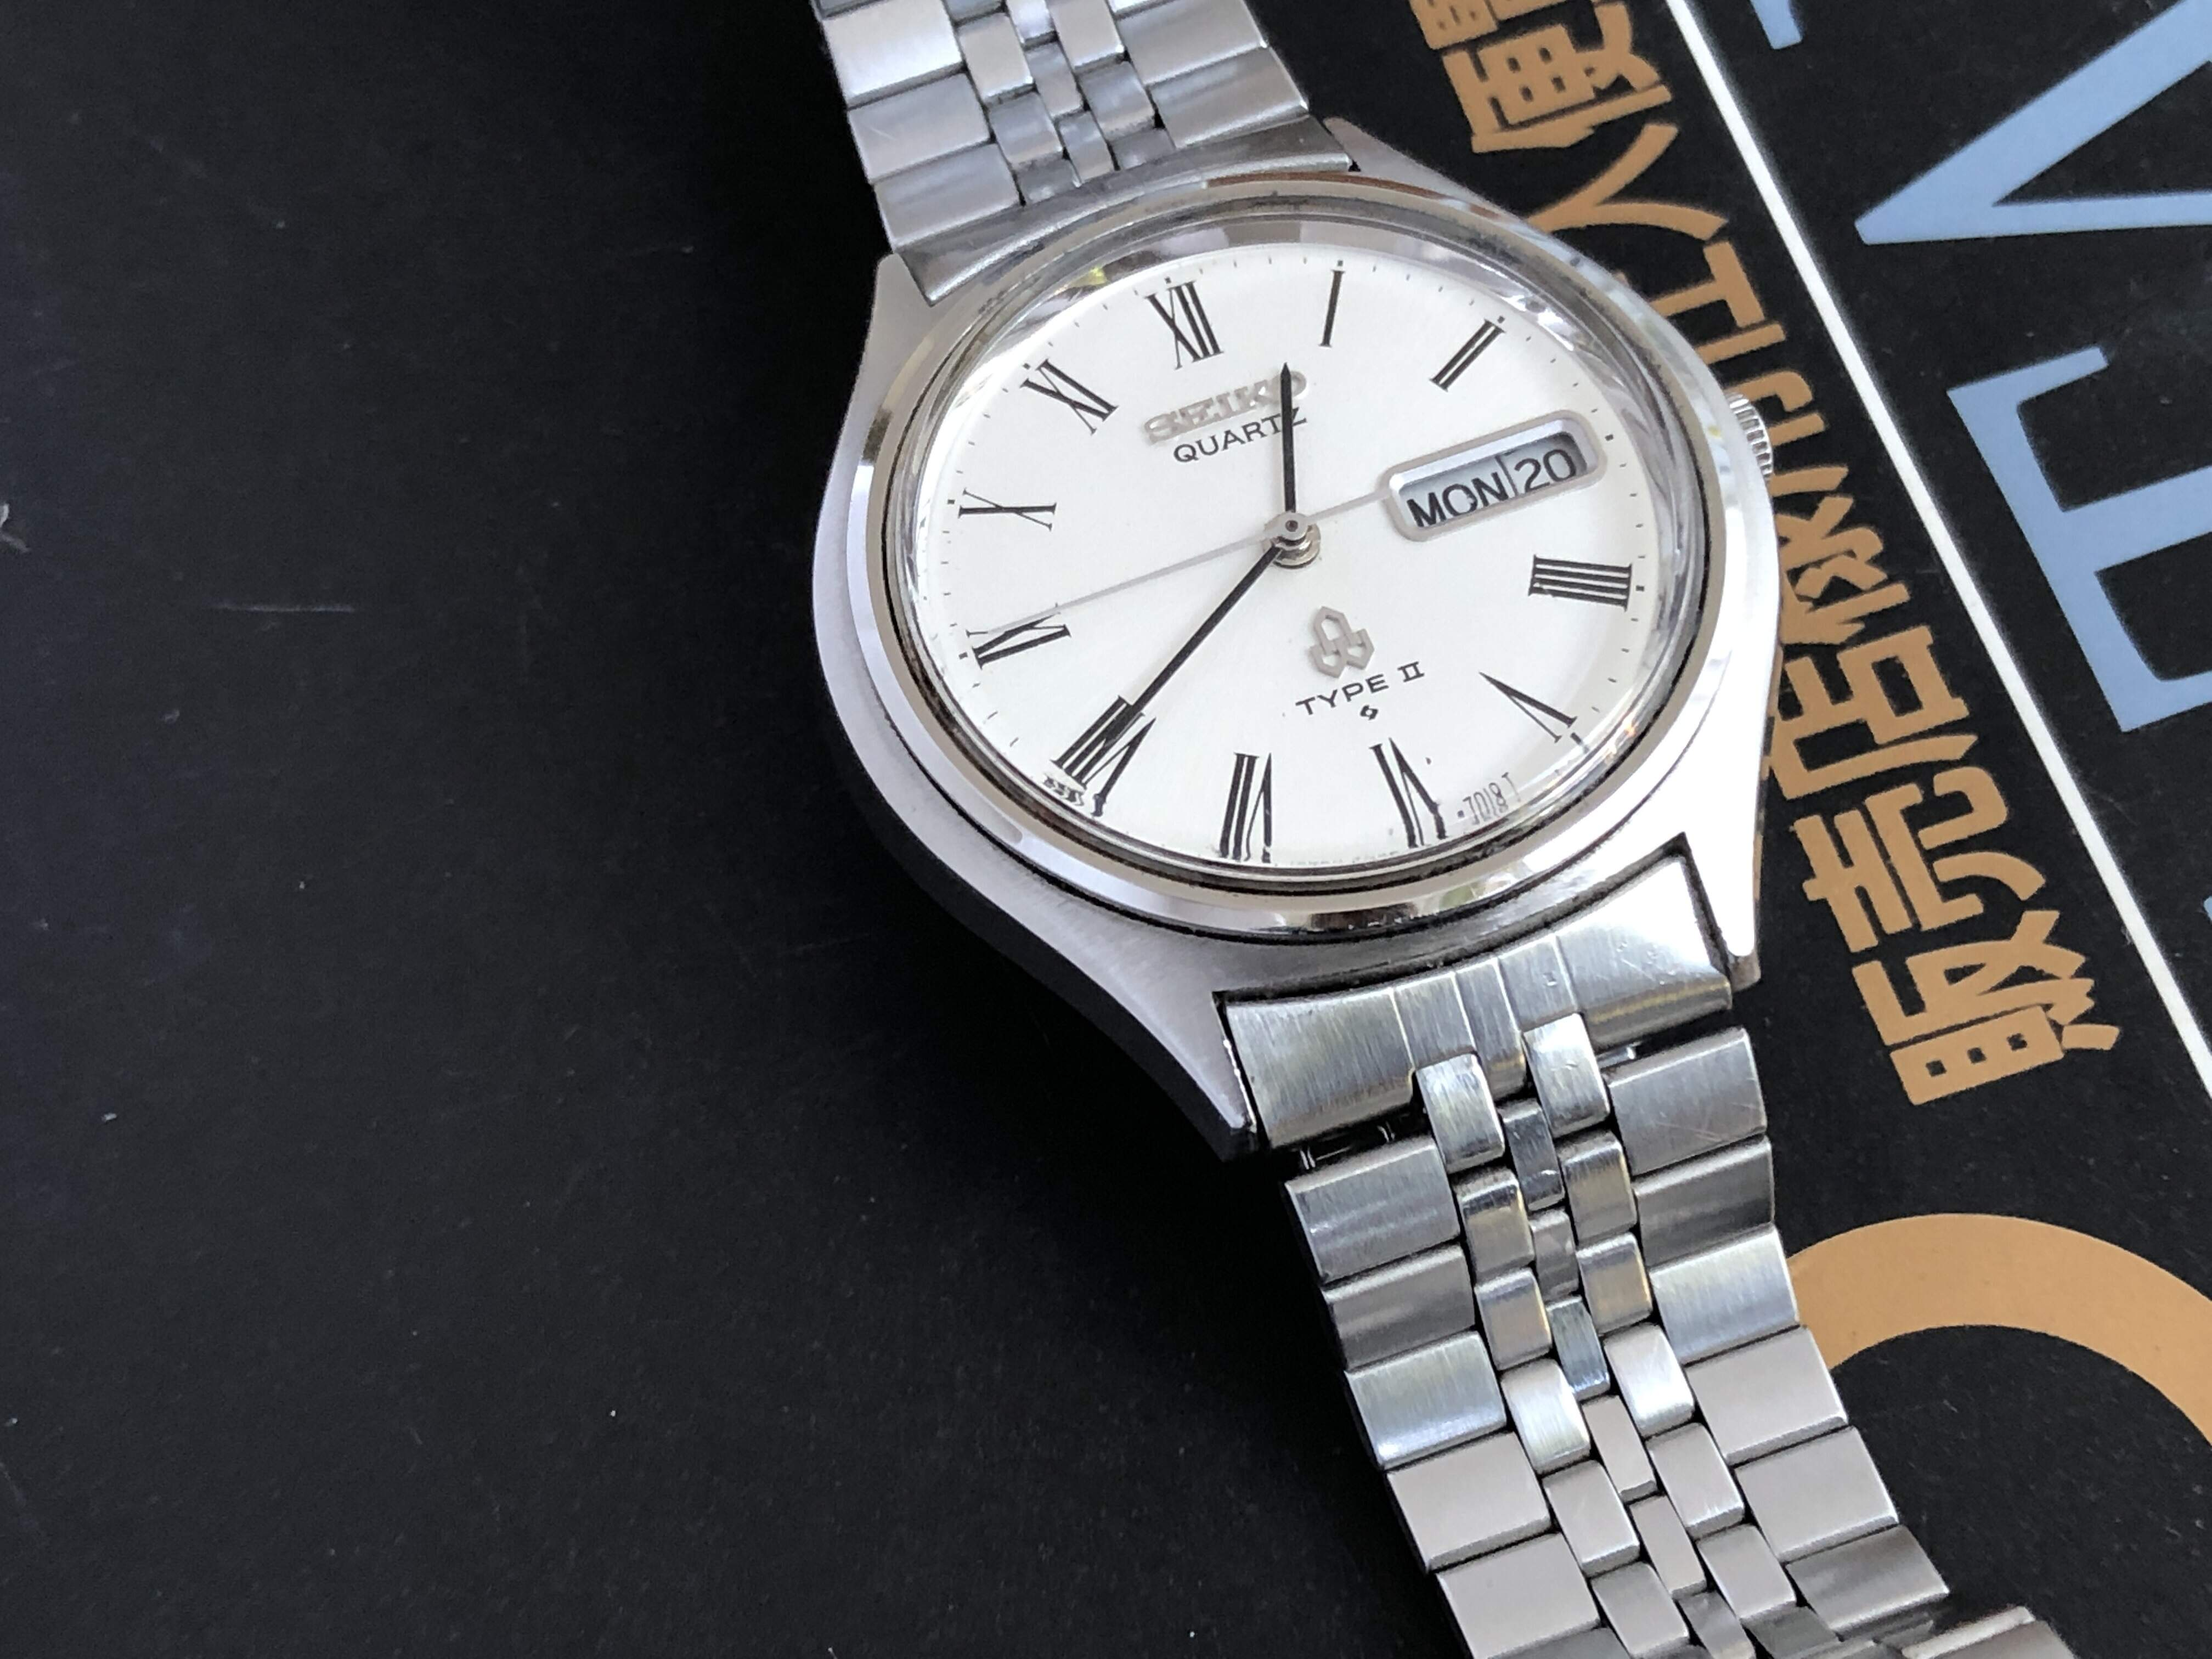 Seiko Type II 7546-7010 QHK110 (For sale)